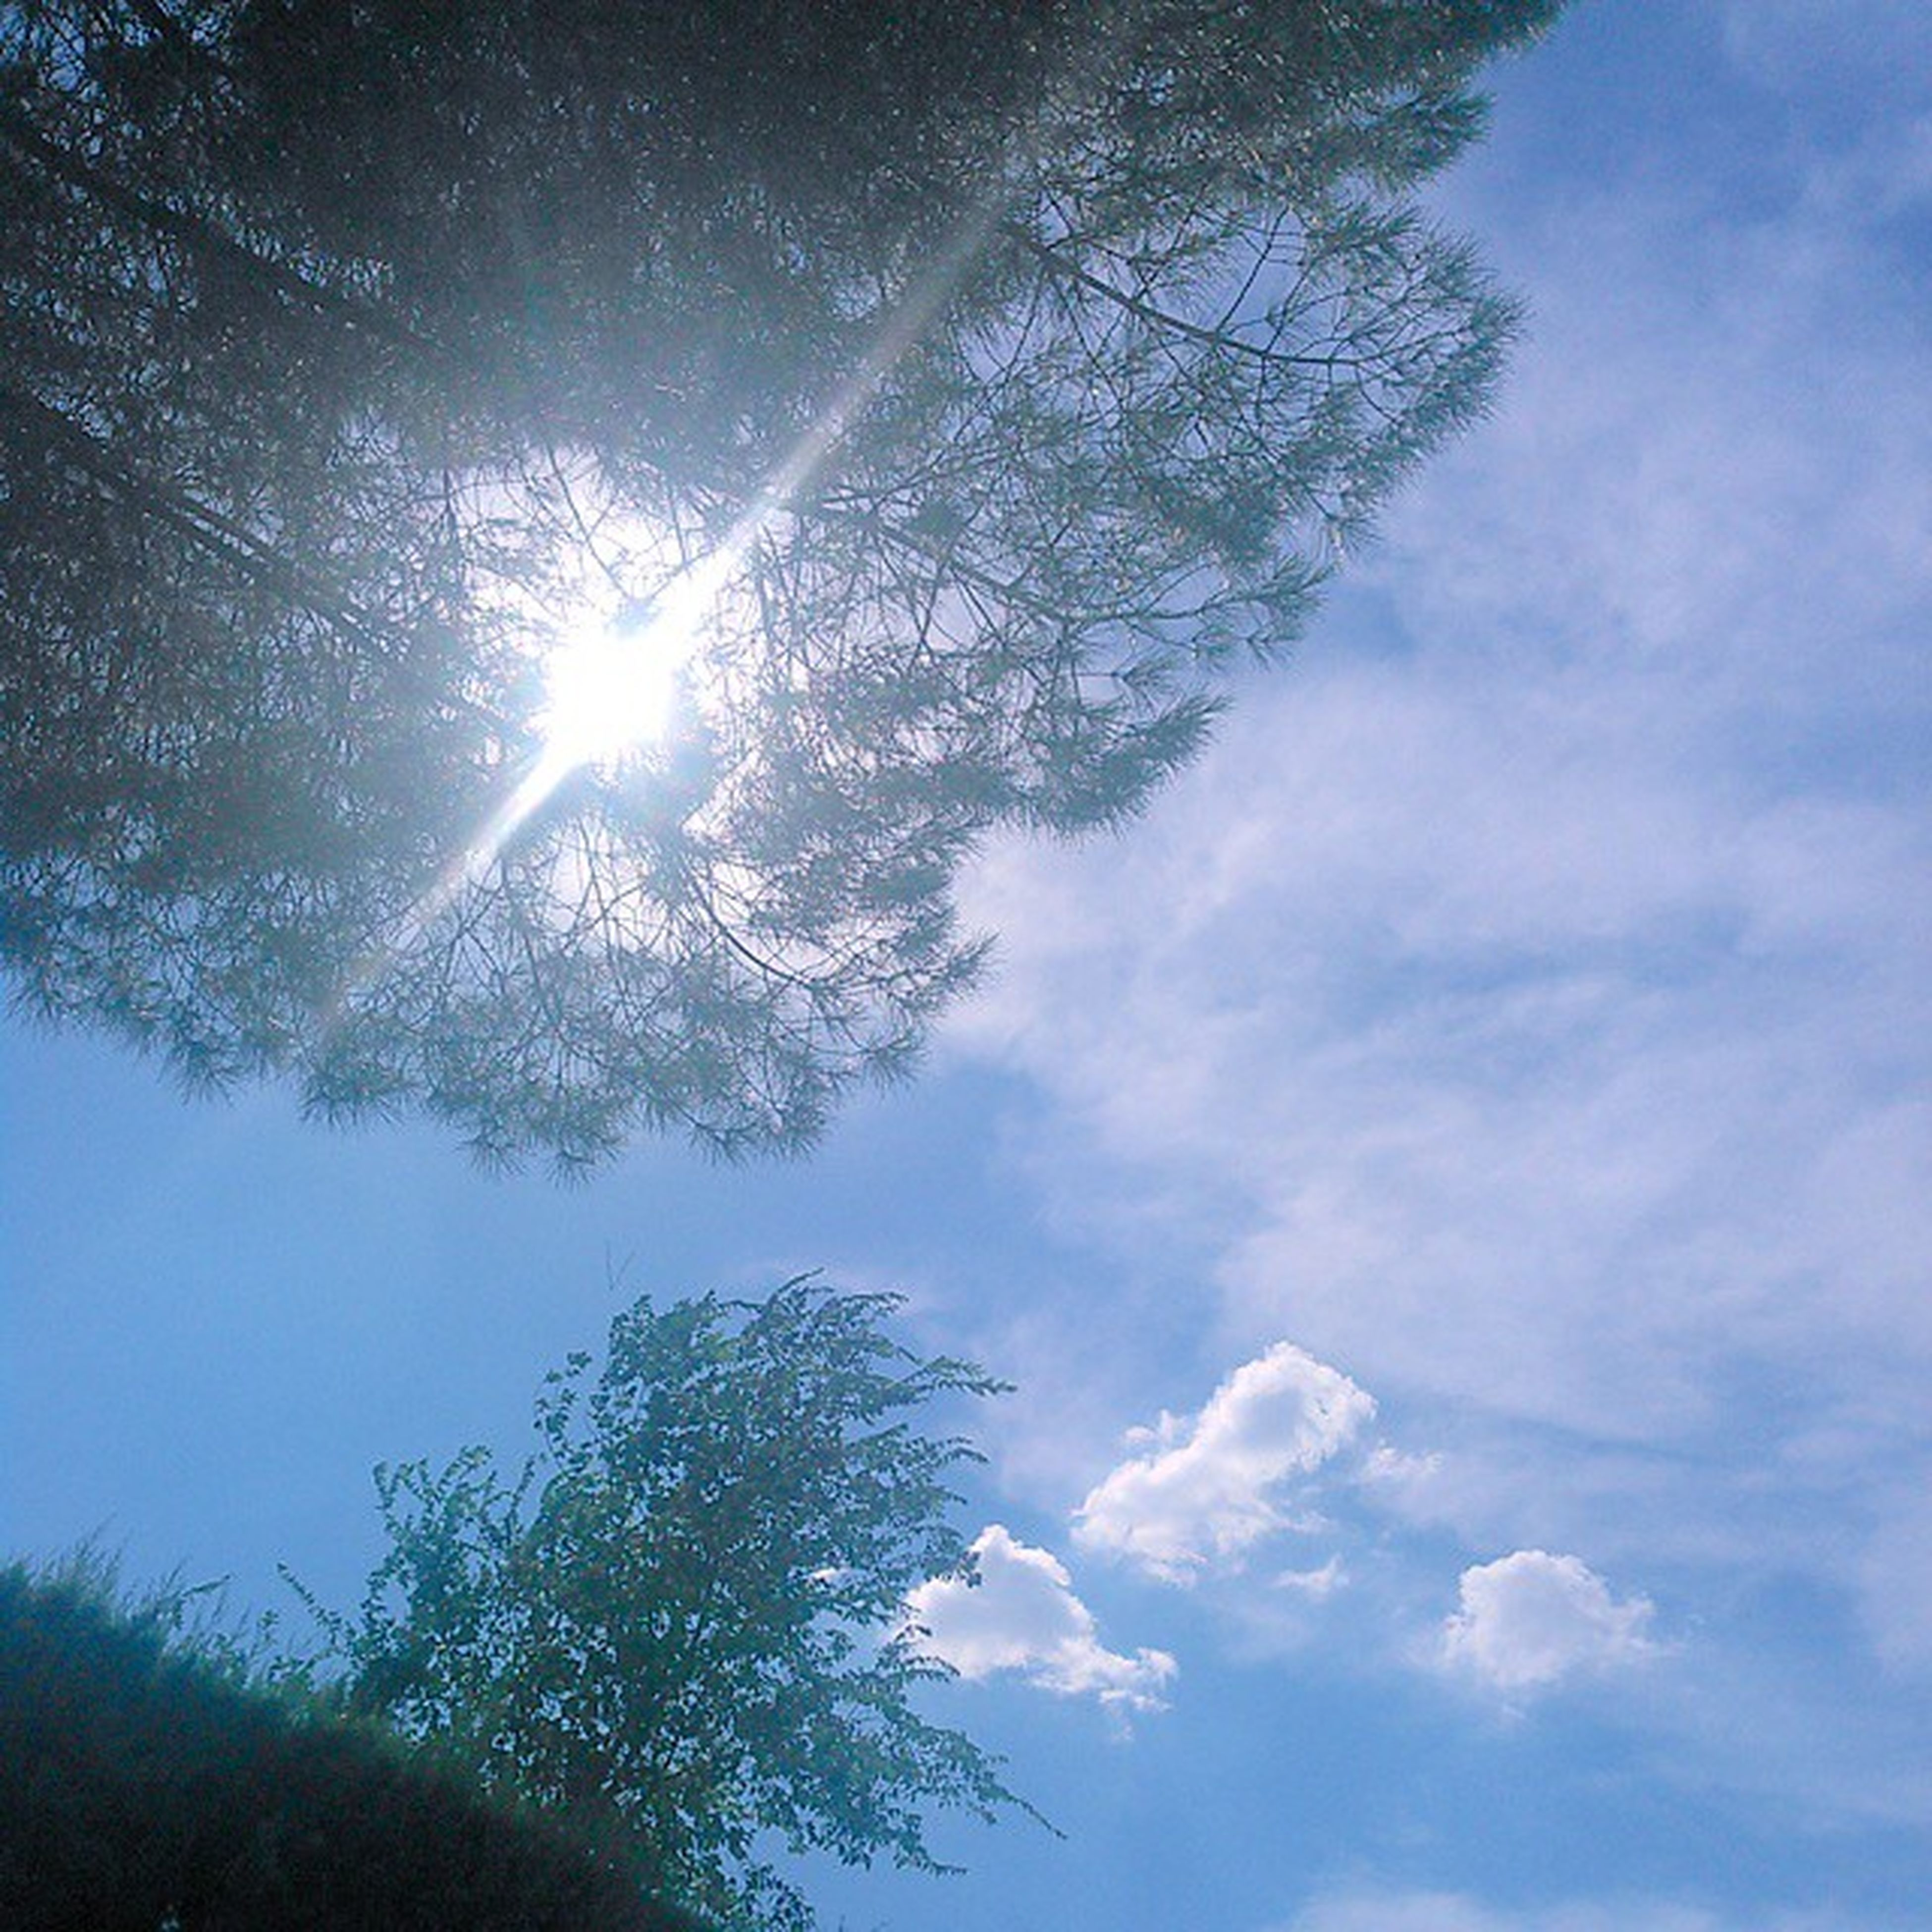 low angle view, tree, sky, sun, tranquility, beauty in nature, sunbeam, nature, sunlight, tranquil scene, scenics, cloud - sky, blue, lens flare, growth, branch, day, silhouette, outdoors, idyllic